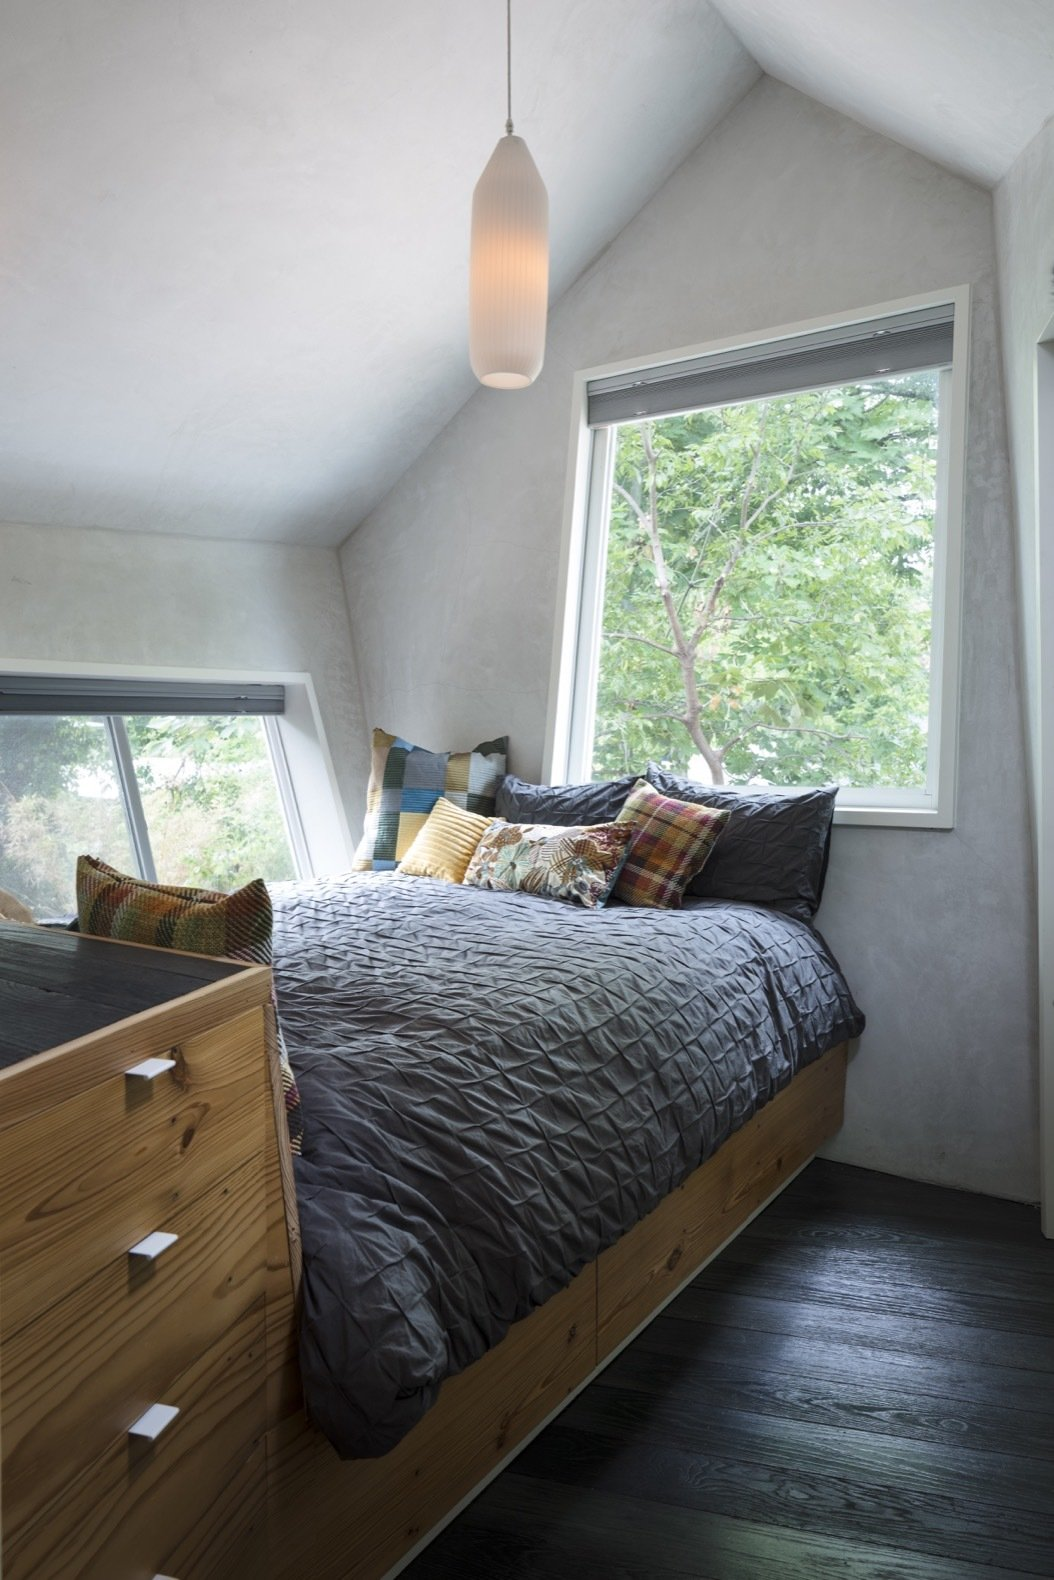 Bedroom with single pendant light above center of room